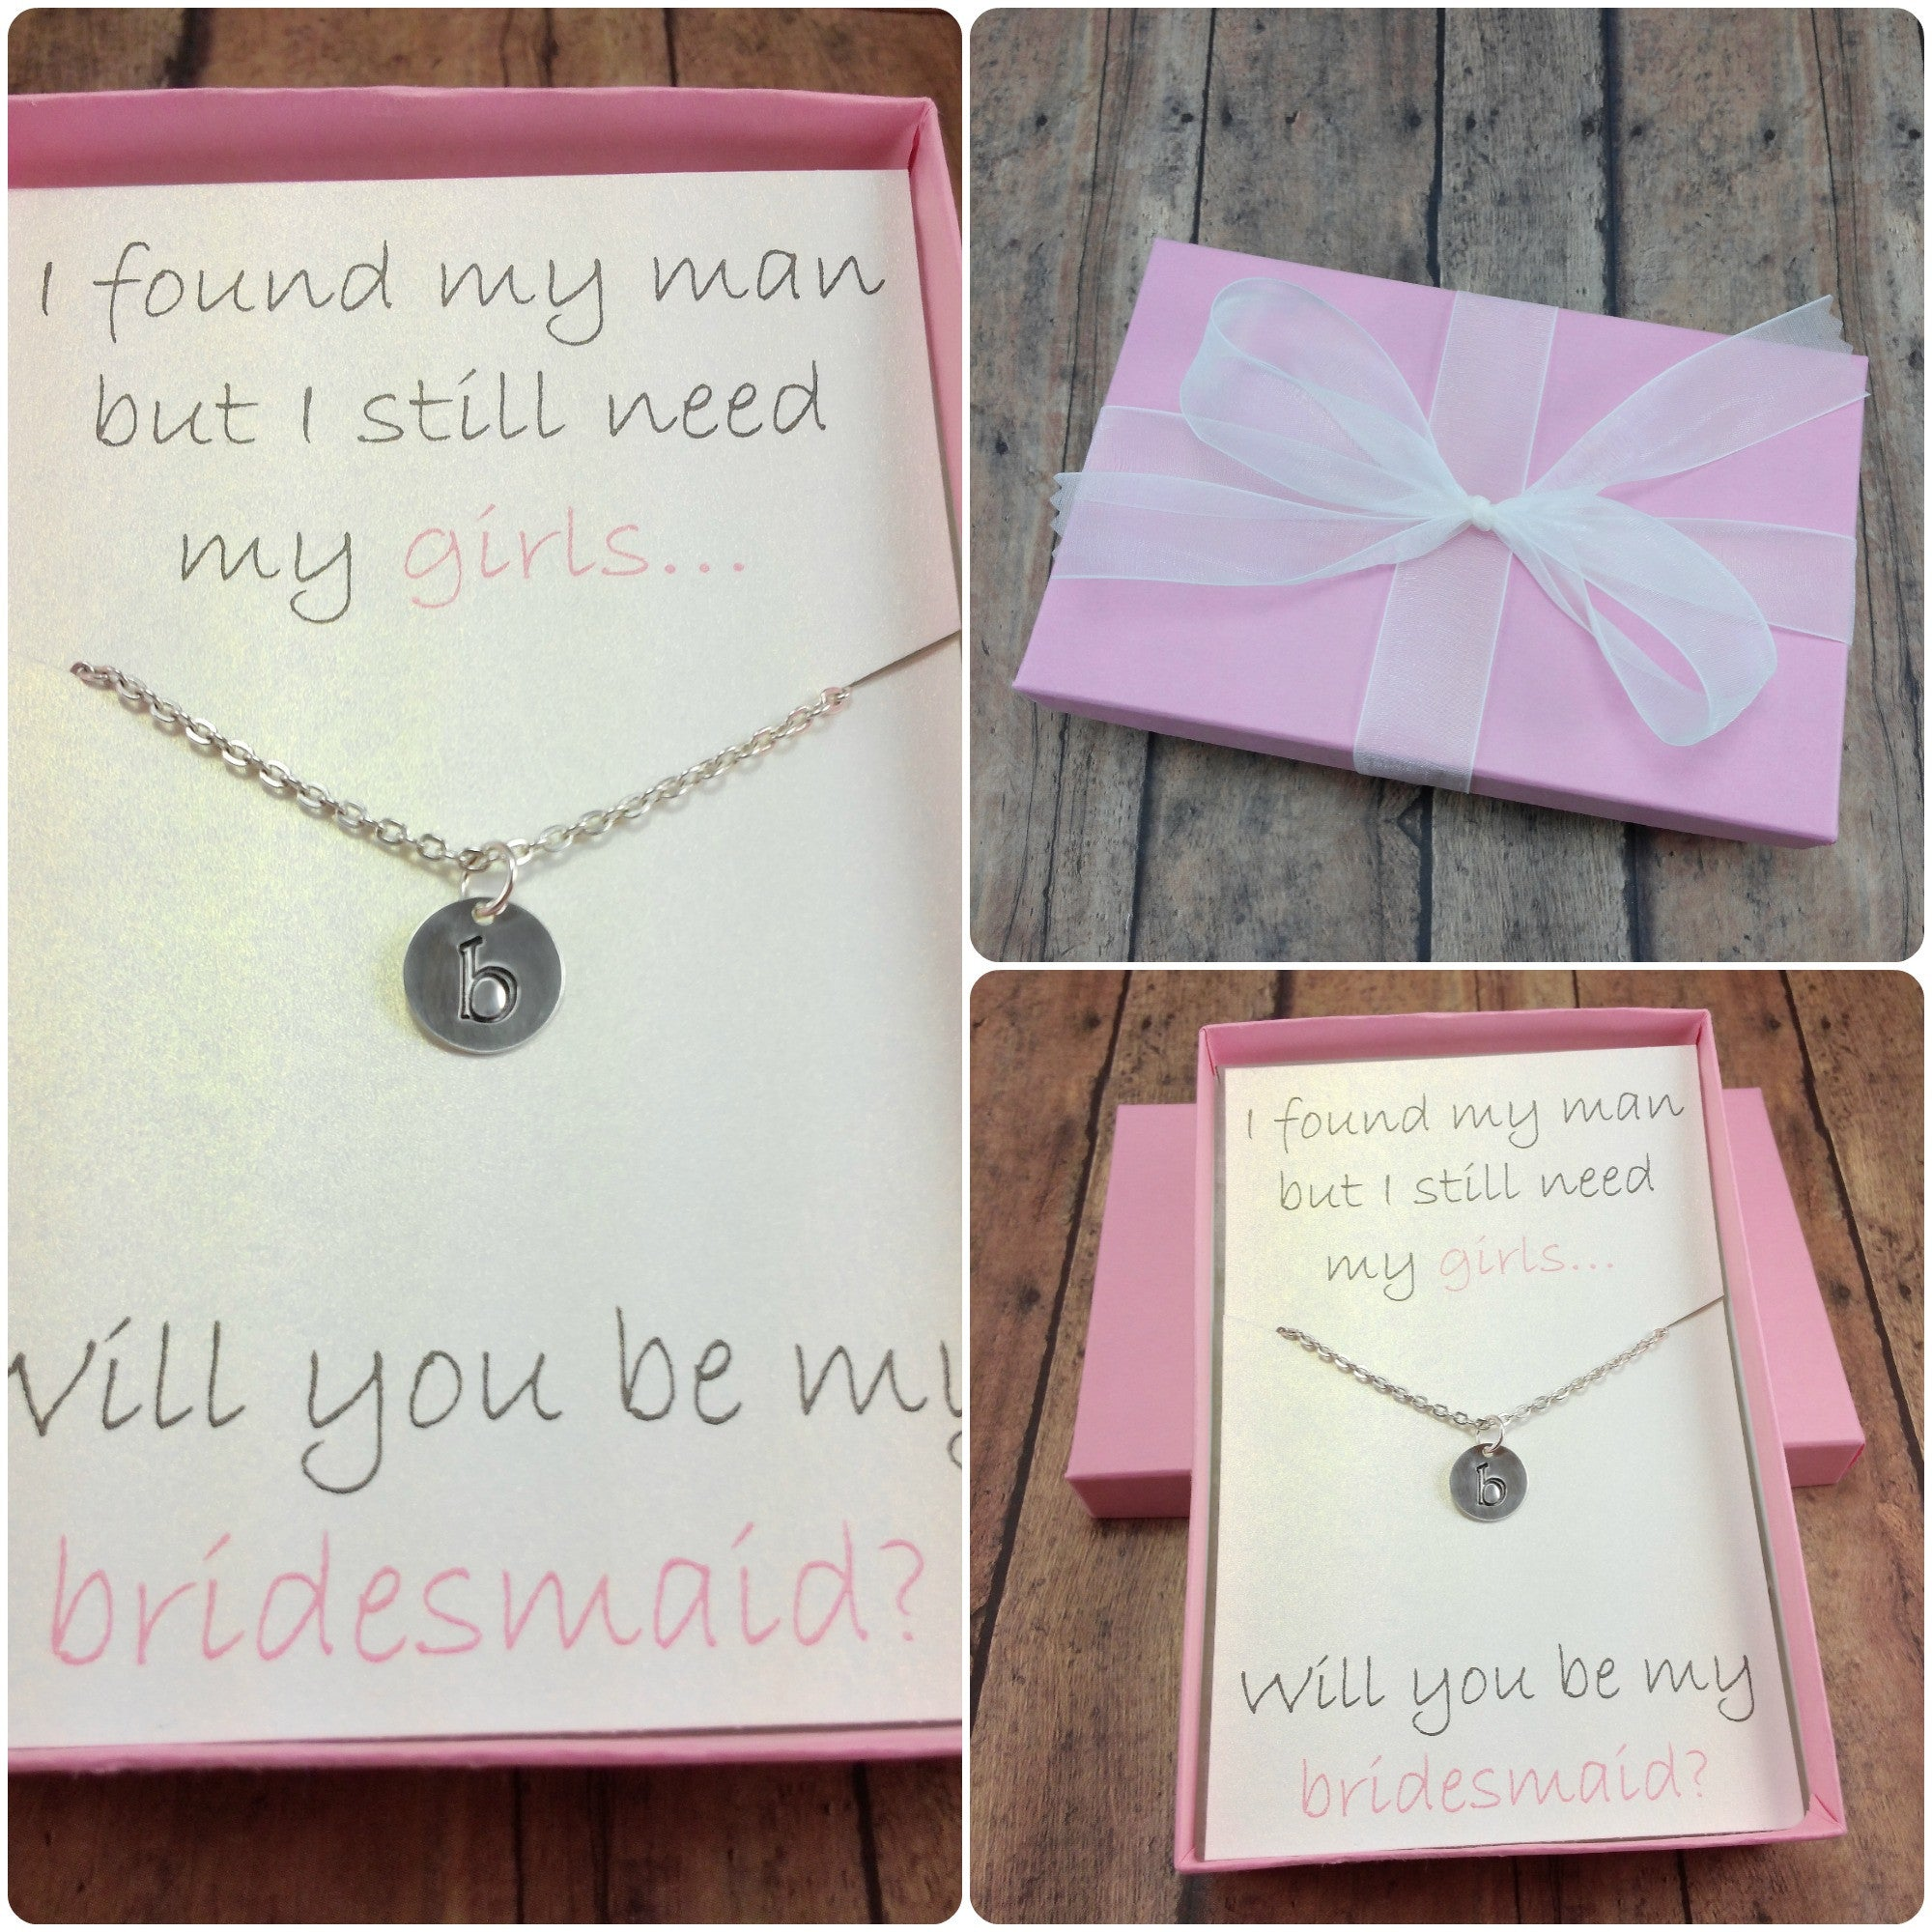 Will You Be My Bridesmaid / How To Ask Bridesmaid / Bridesmaid Necklace